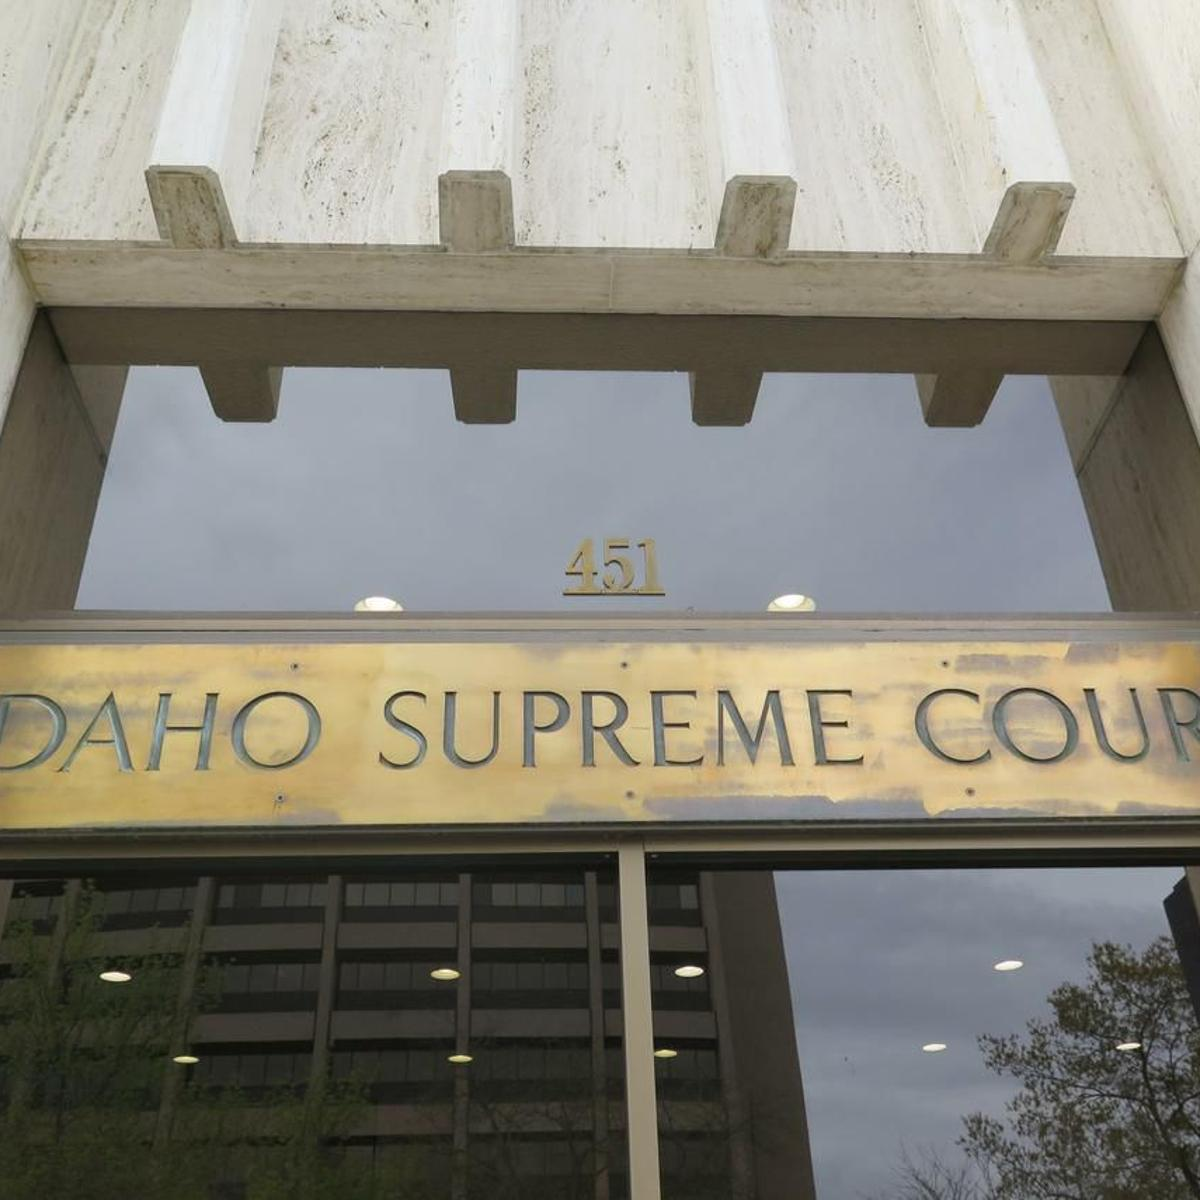 Local organizations scrambling after Supreme Court ruling on